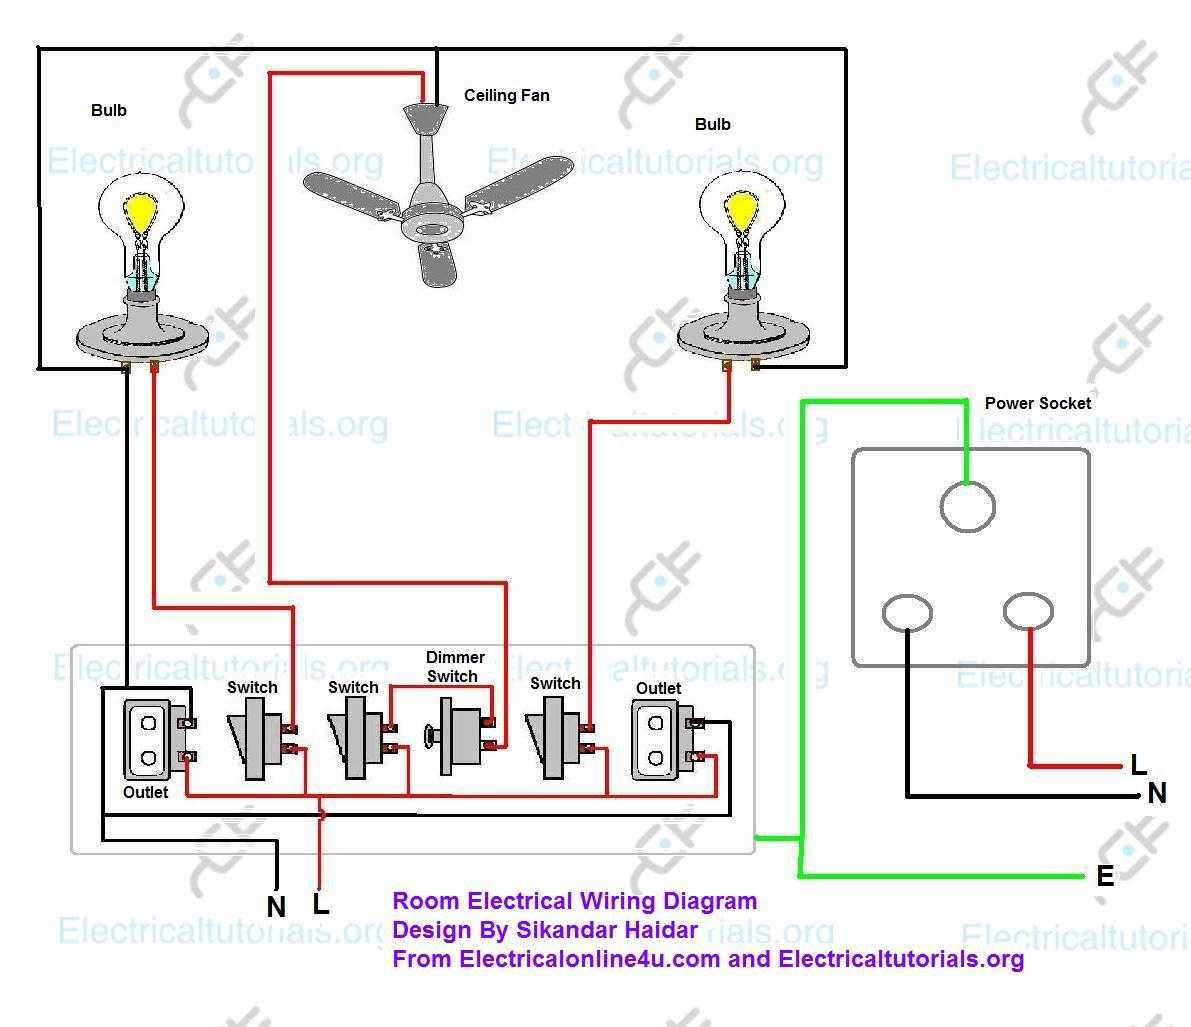 electric circuit drawing at getdrawings.com | free for ... basic house wiring circuits #8